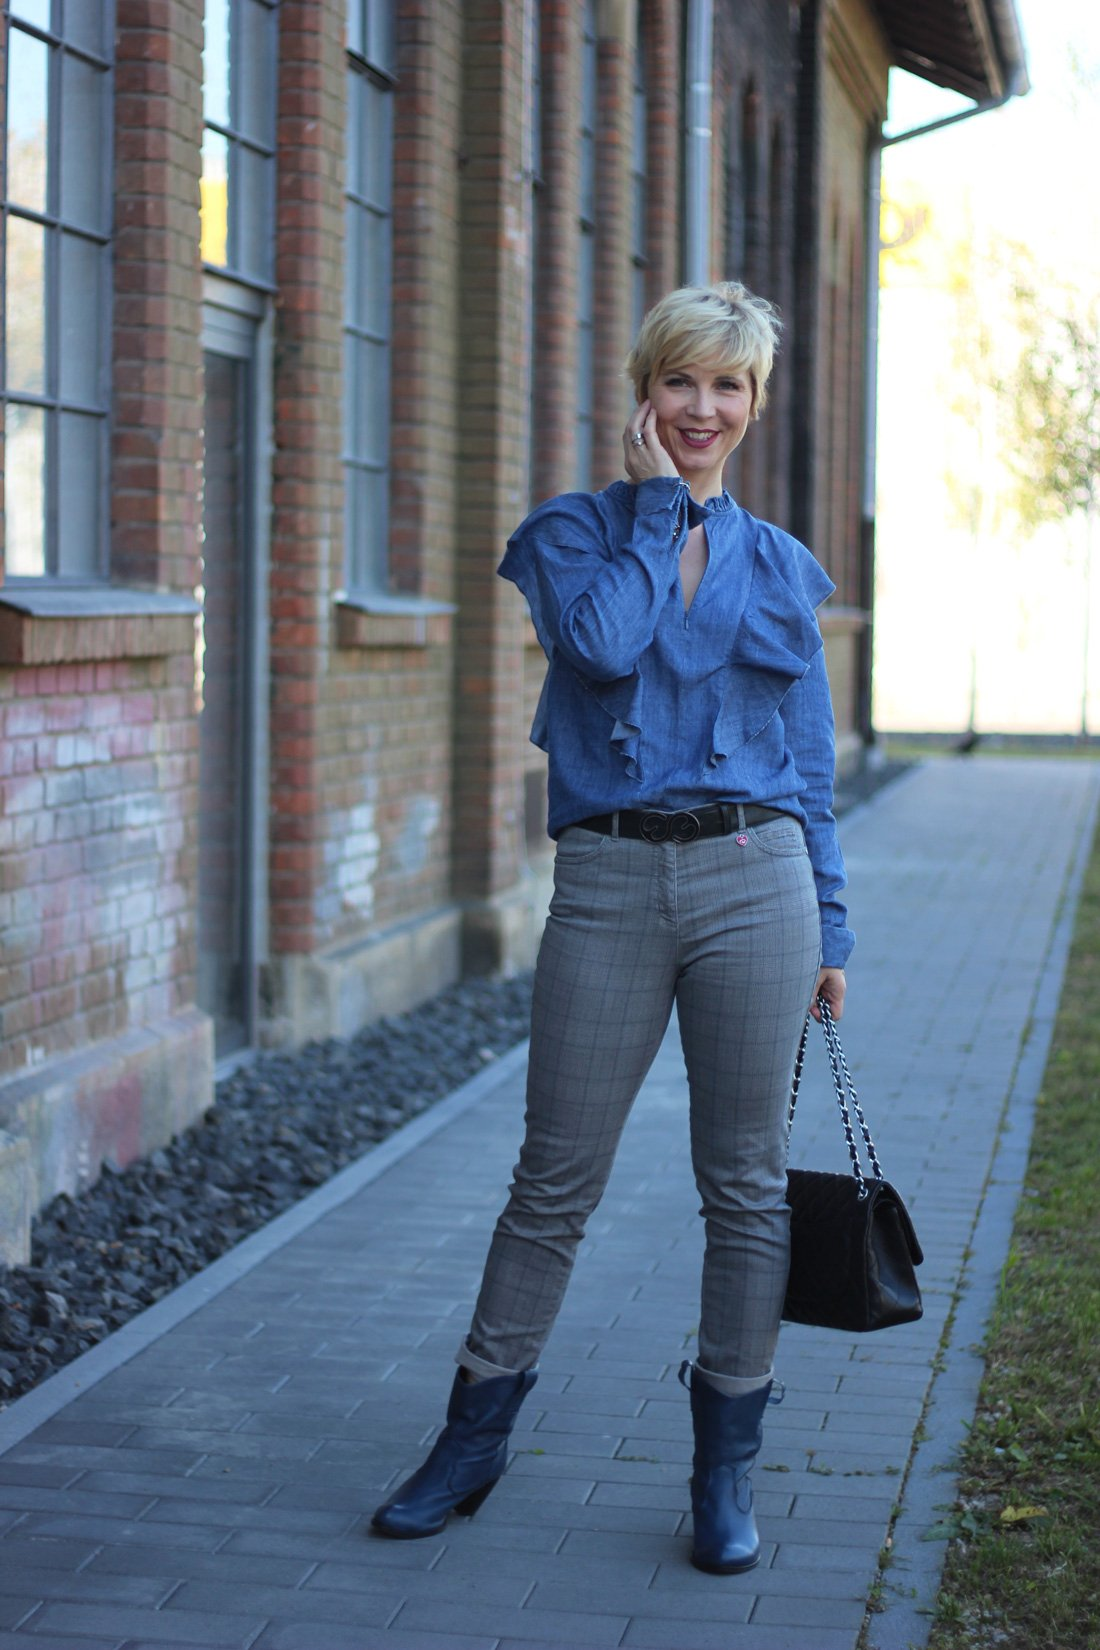 conny doll lifestyle: Unterwegs in Sachen Beauty - Karo meets Rüschen, Toni Fashion, Cowboystiefel, Rüschenbluse, casual Styling